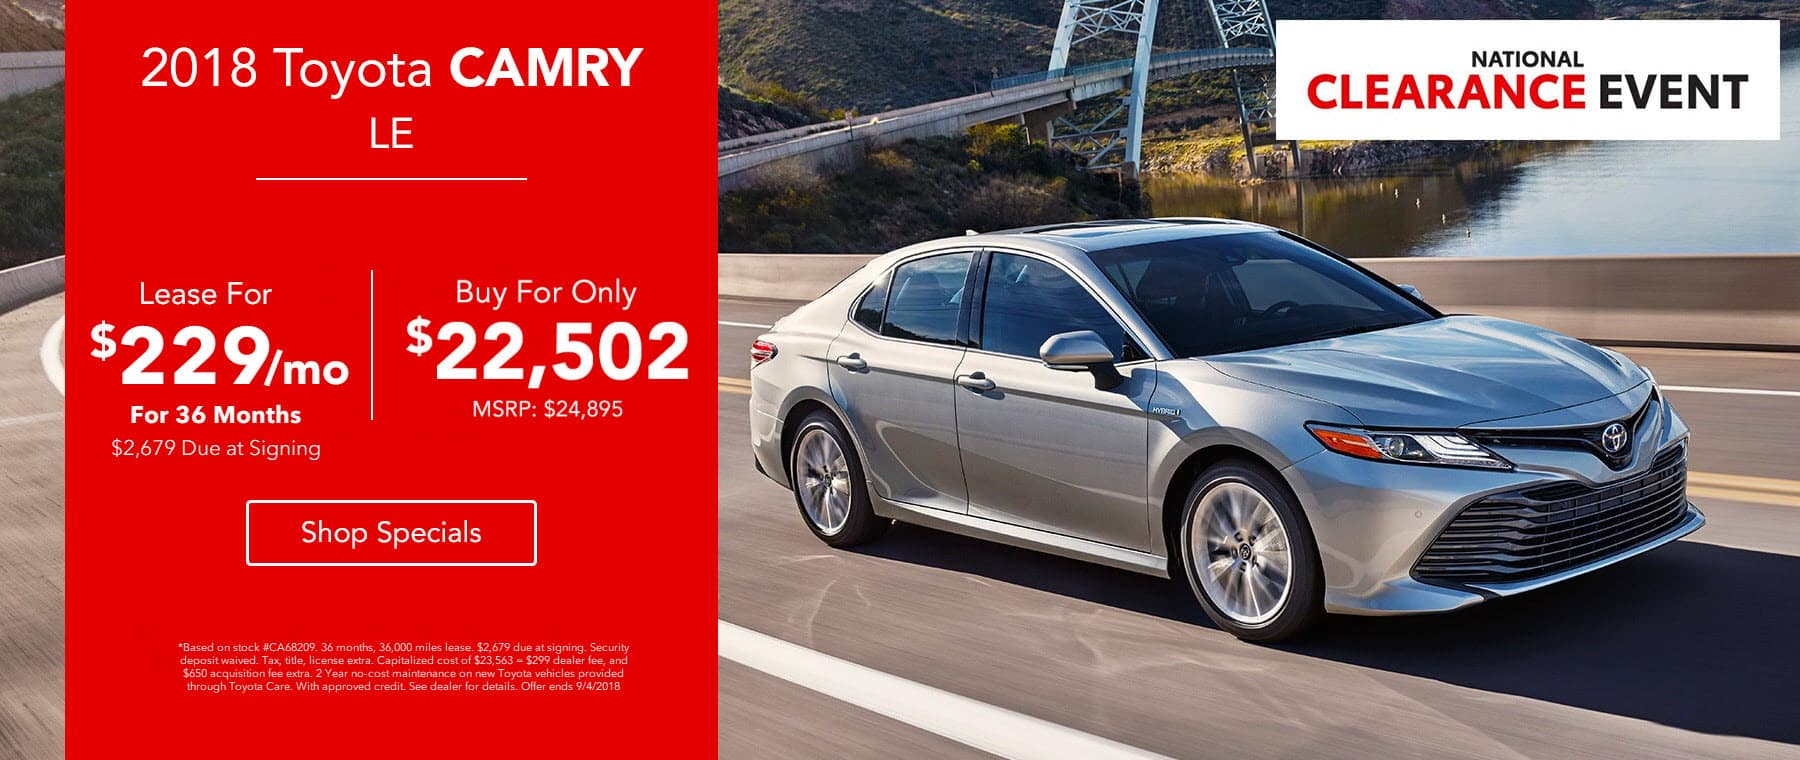 2018 Toyota Camry LE - Lease for $229/mo